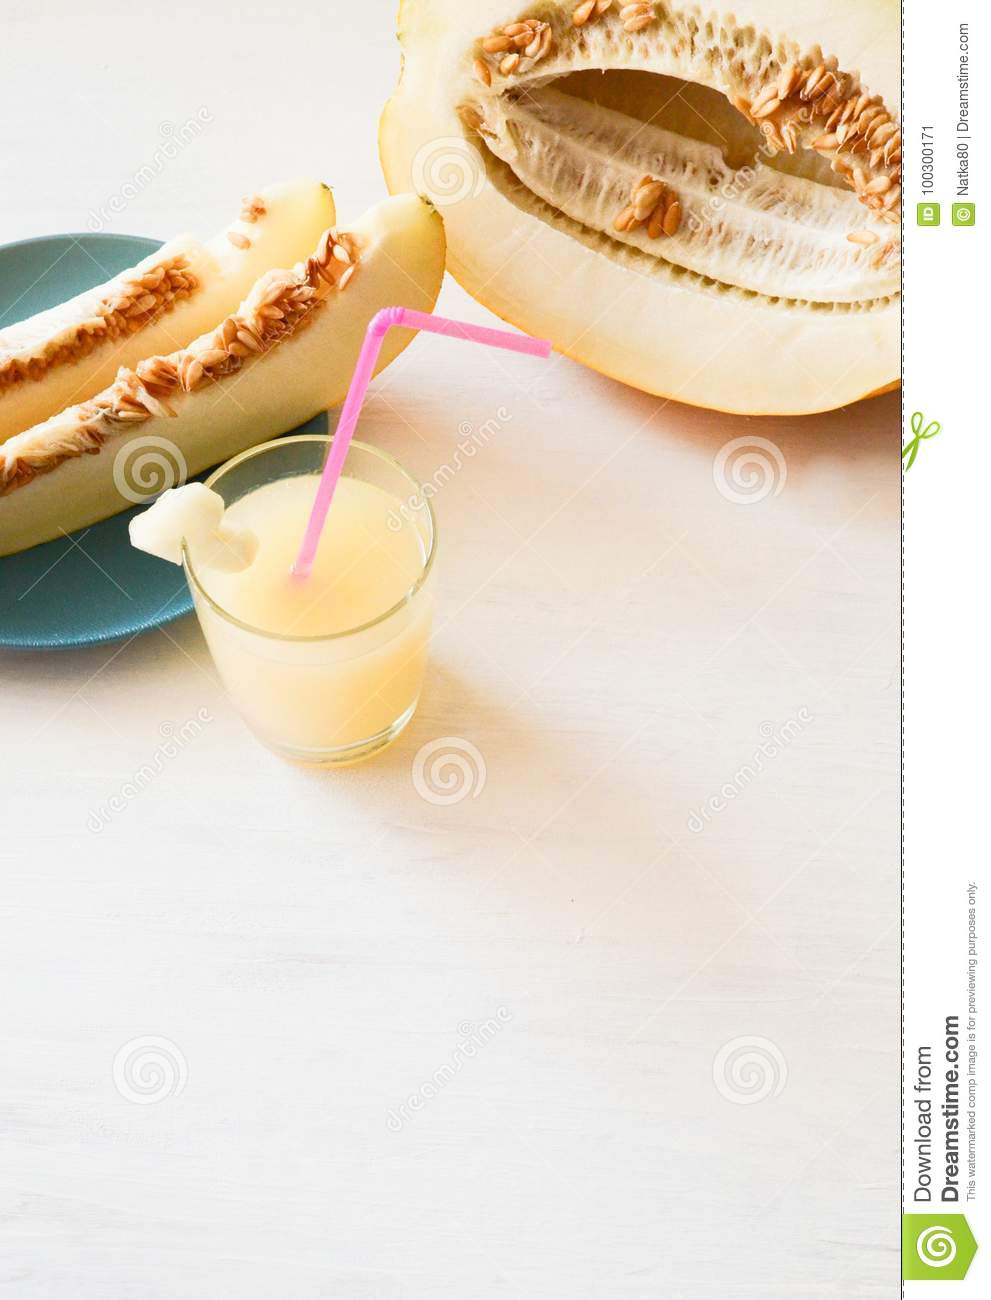 Cut melon next , slices of melon on a plate glass of smoothie with a slice of melon with a straw